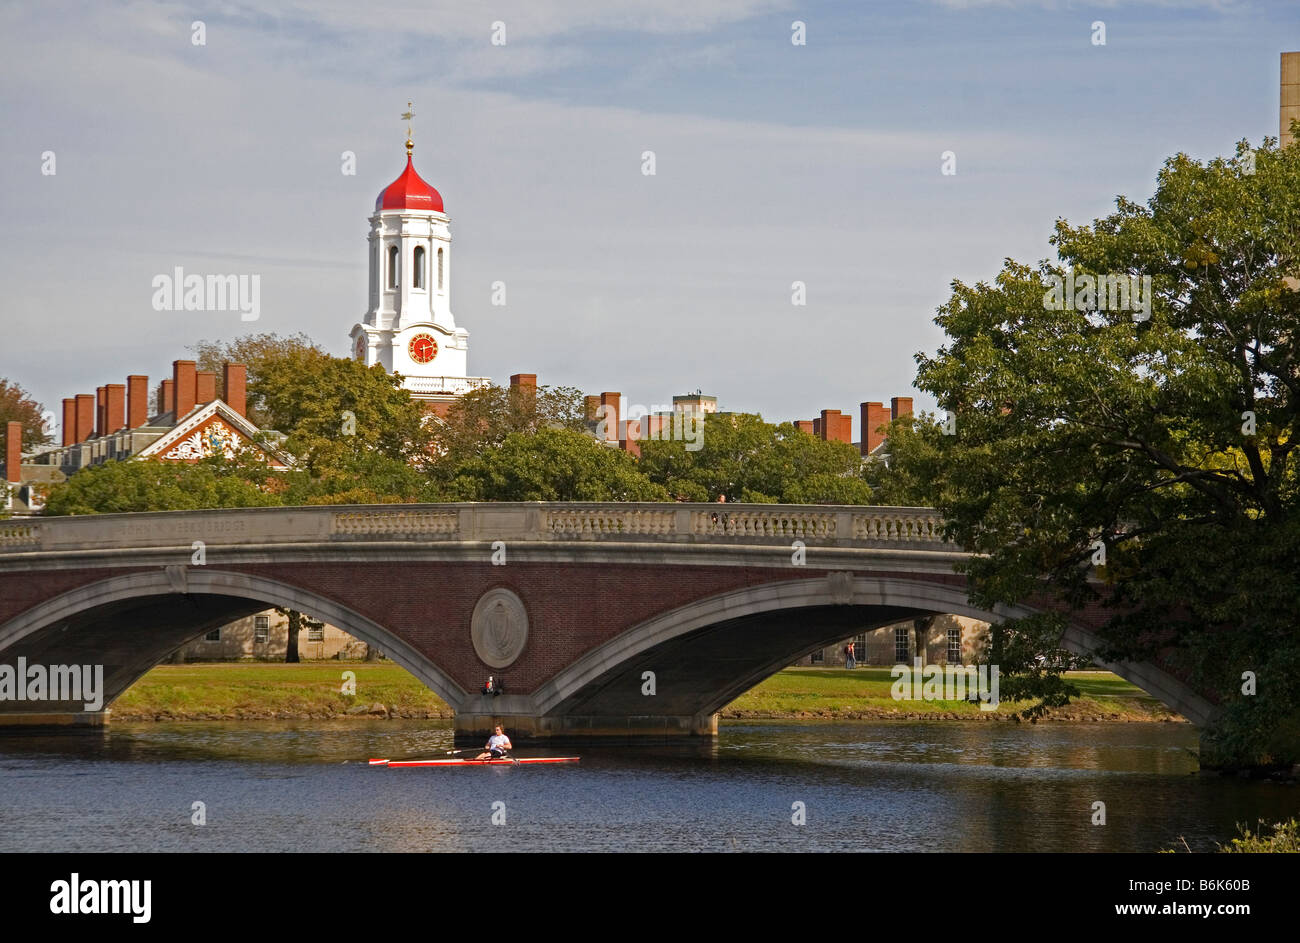 Rowing on the Charles River and Harvard University buildings in Cambridge Greater Boston Massachusetts USA - Stock Image